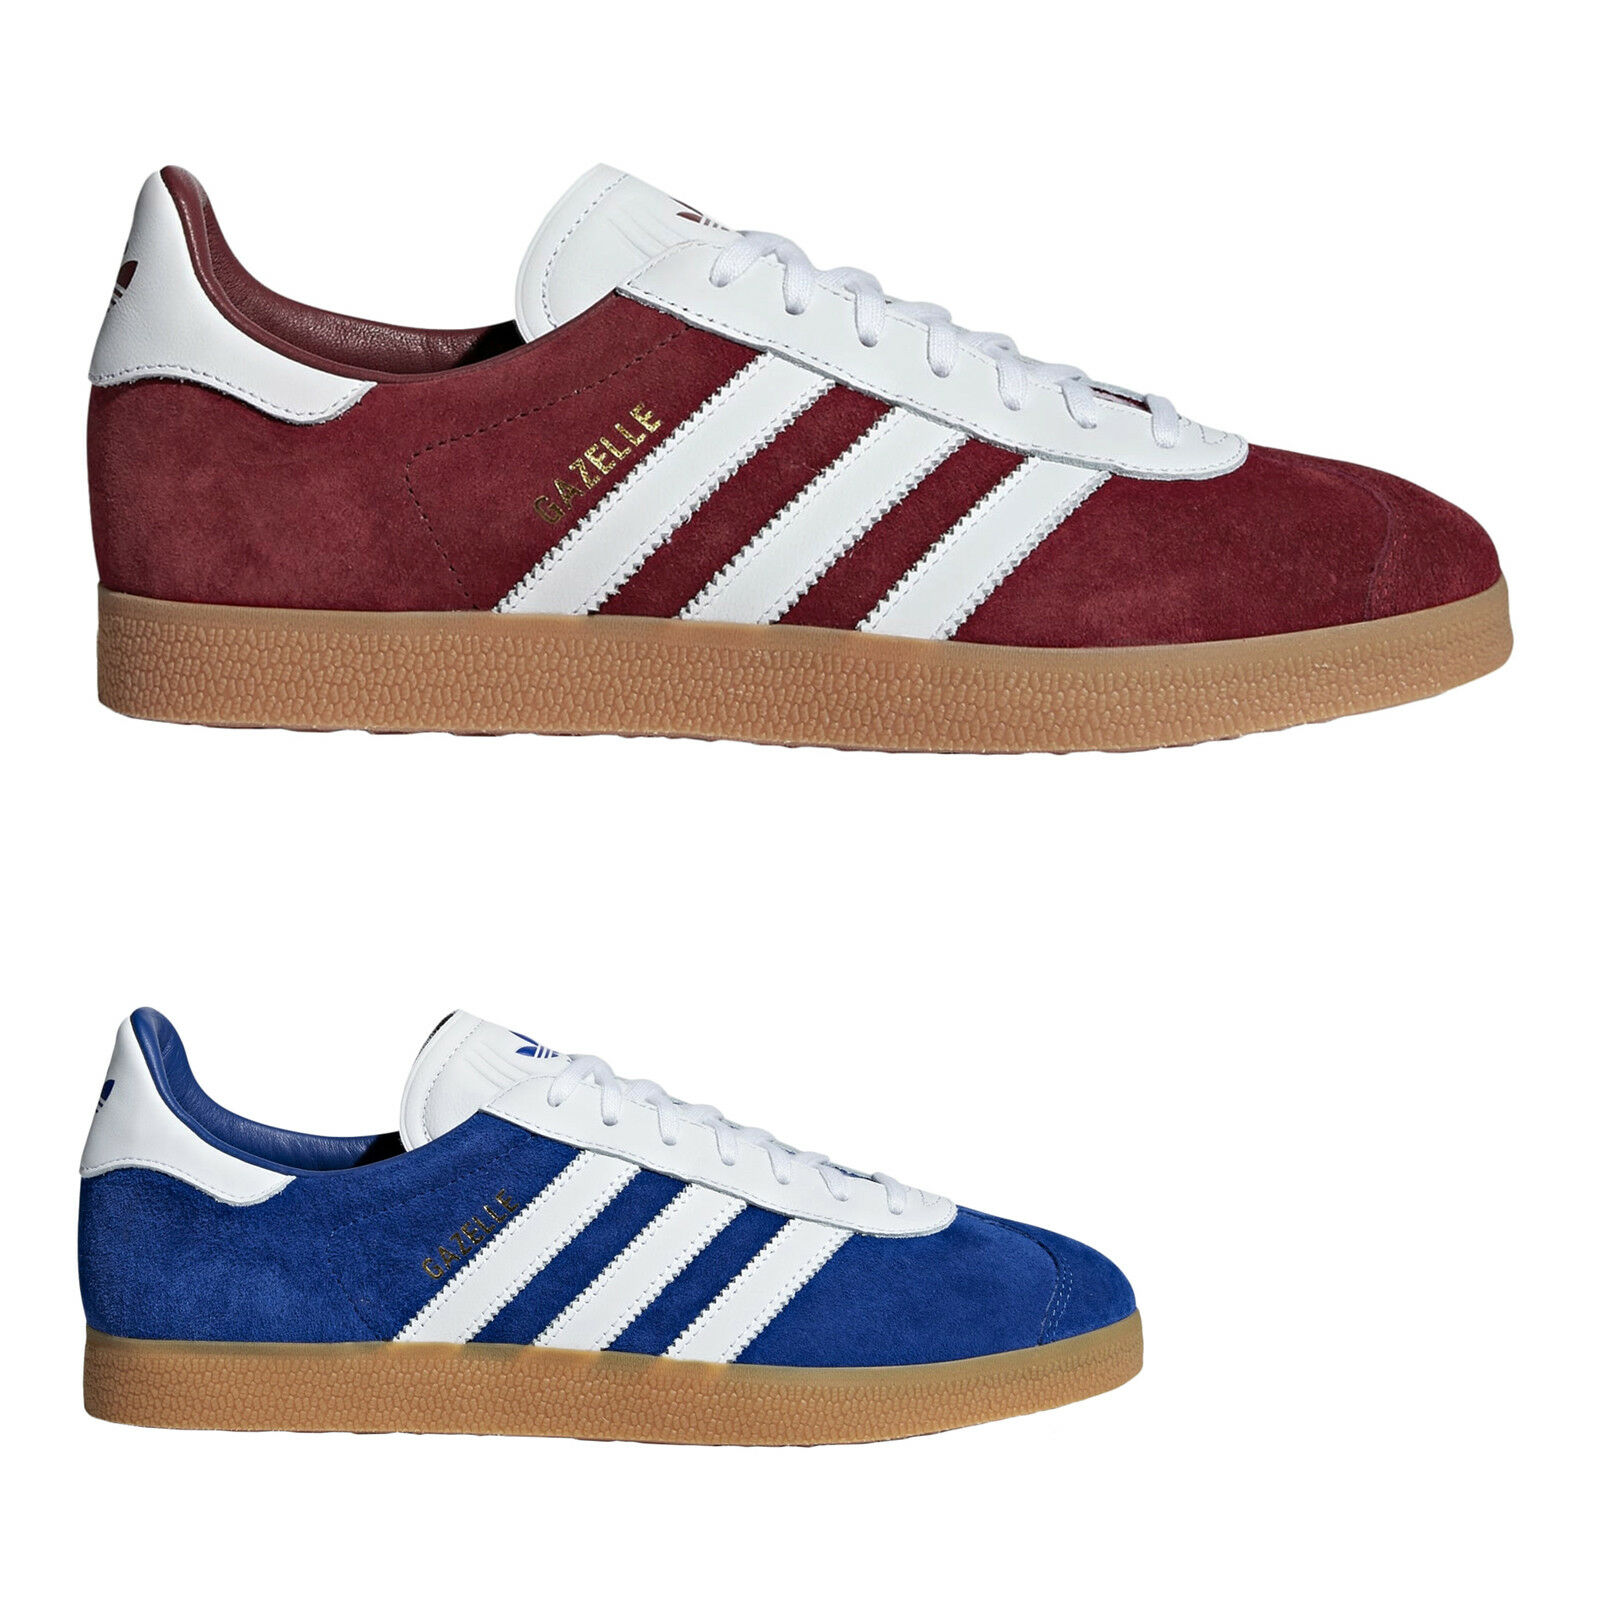 Adidas Gazelle Suede Casual Classic Lace-Up Low-Top Mens Trainers